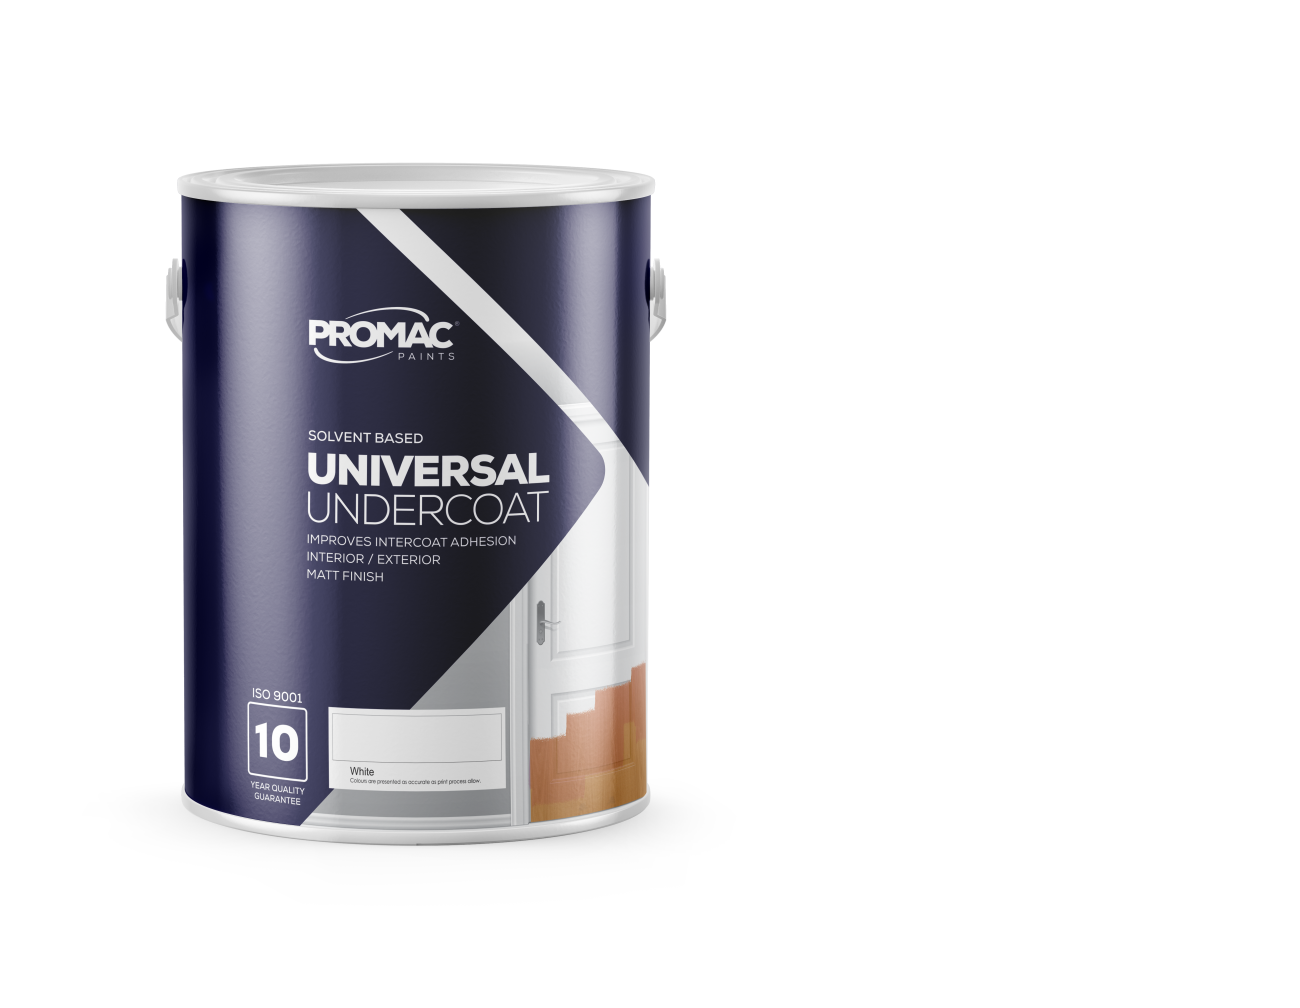 UNIVERSALUNDERCOAT - SOLVENT BASEDPromac Universal Undercoat is a solvent based high quality undercoat that may be used over a wide range of primers to improve the adhesion and bonding between the primer and top coat or between a solvent and water based top coat. It improves hiding properties of the paint system, while providing a sandable surface to ensure a quality finish.